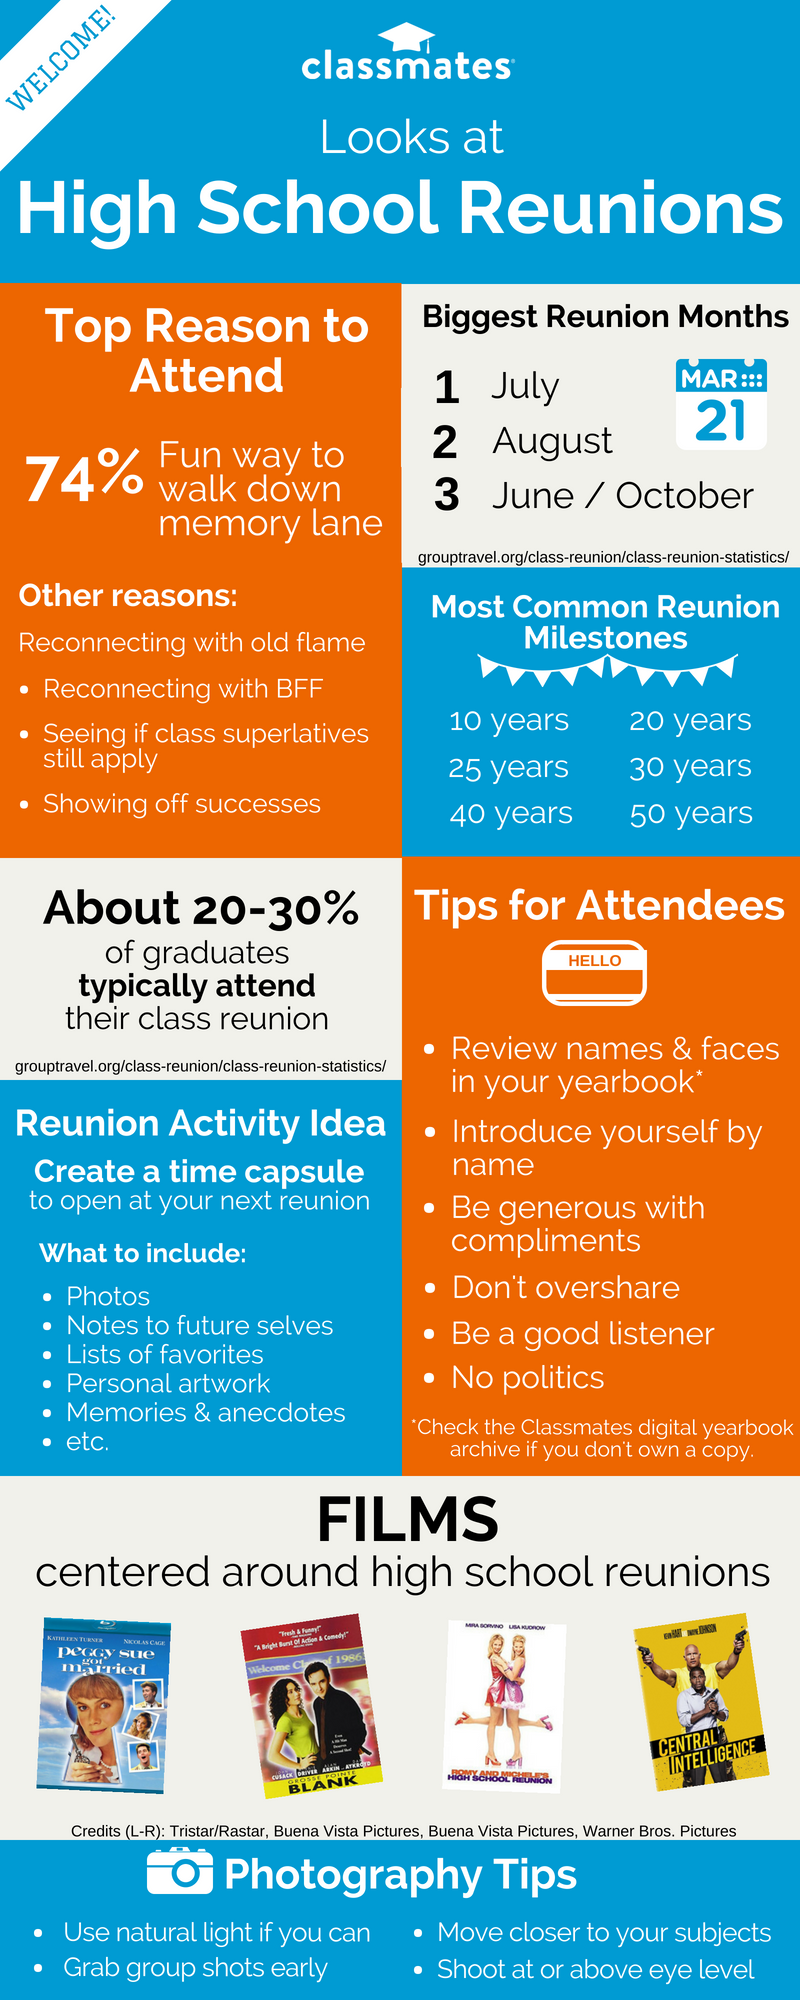 Infographic | Classmates Looks at High School Reunions Infographic